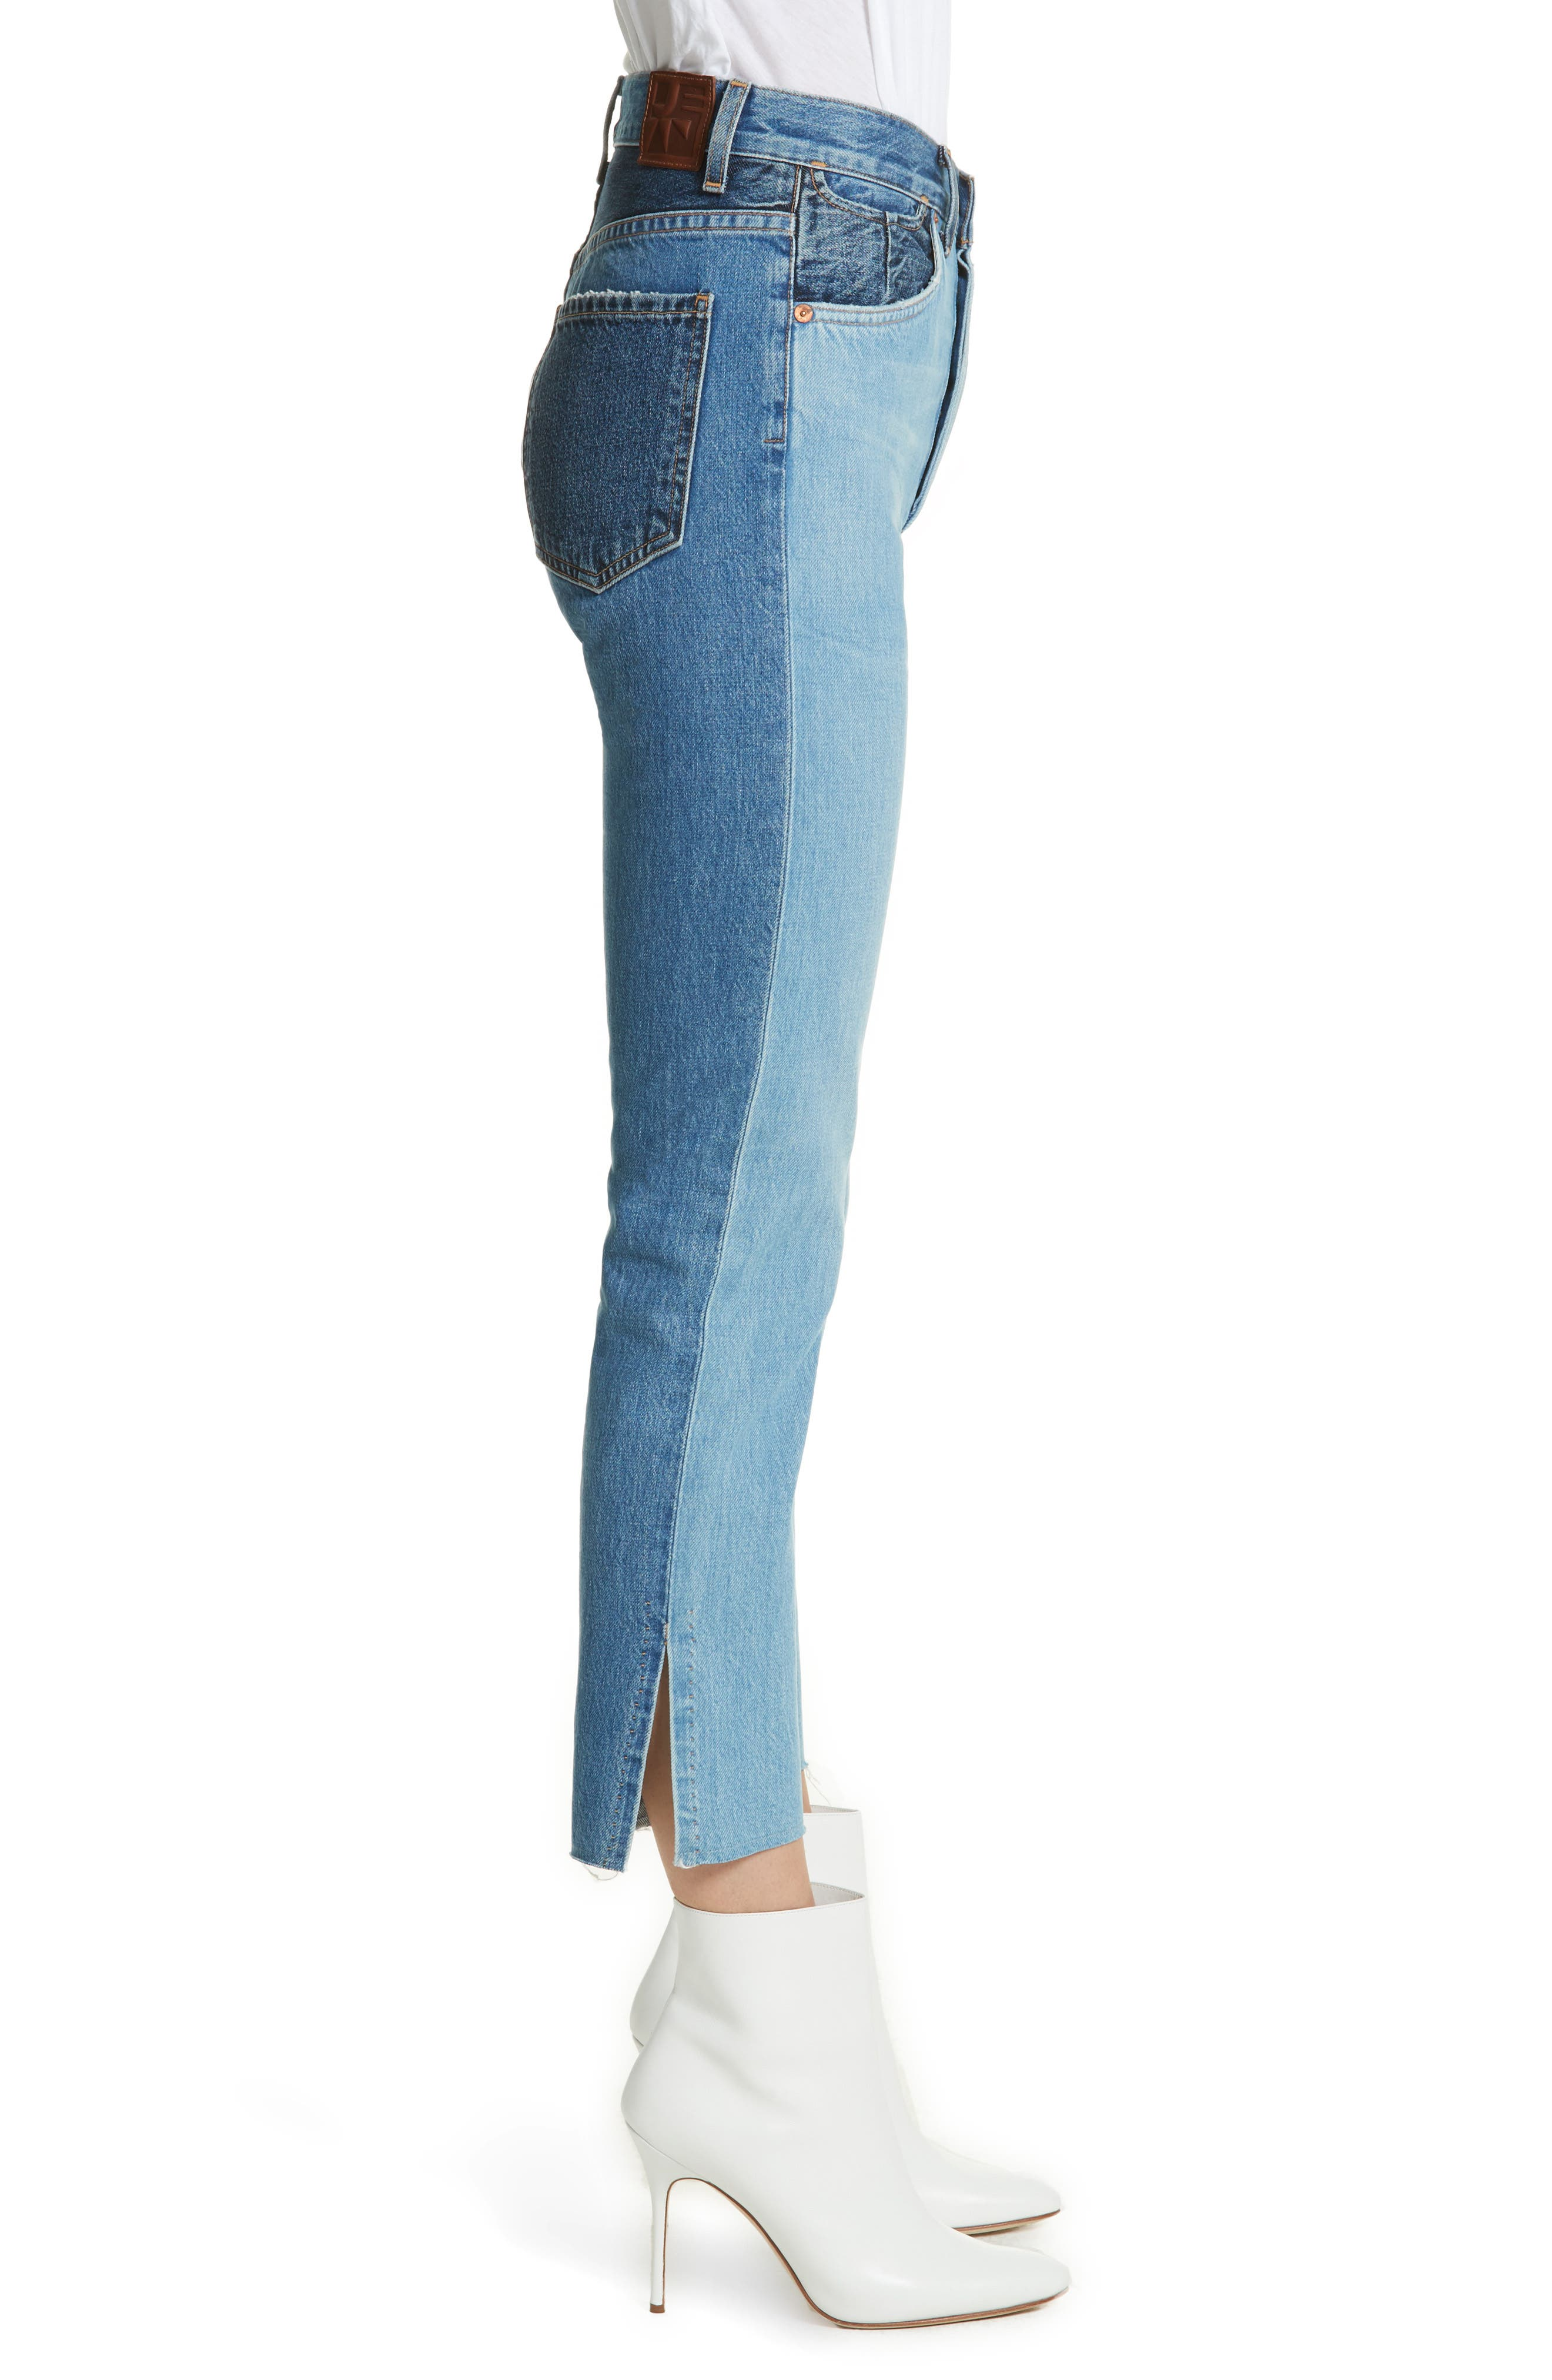 Hunter High Rise Straight Leg Crop Jeans,                             Alternate thumbnail 3, color,                             Jagger